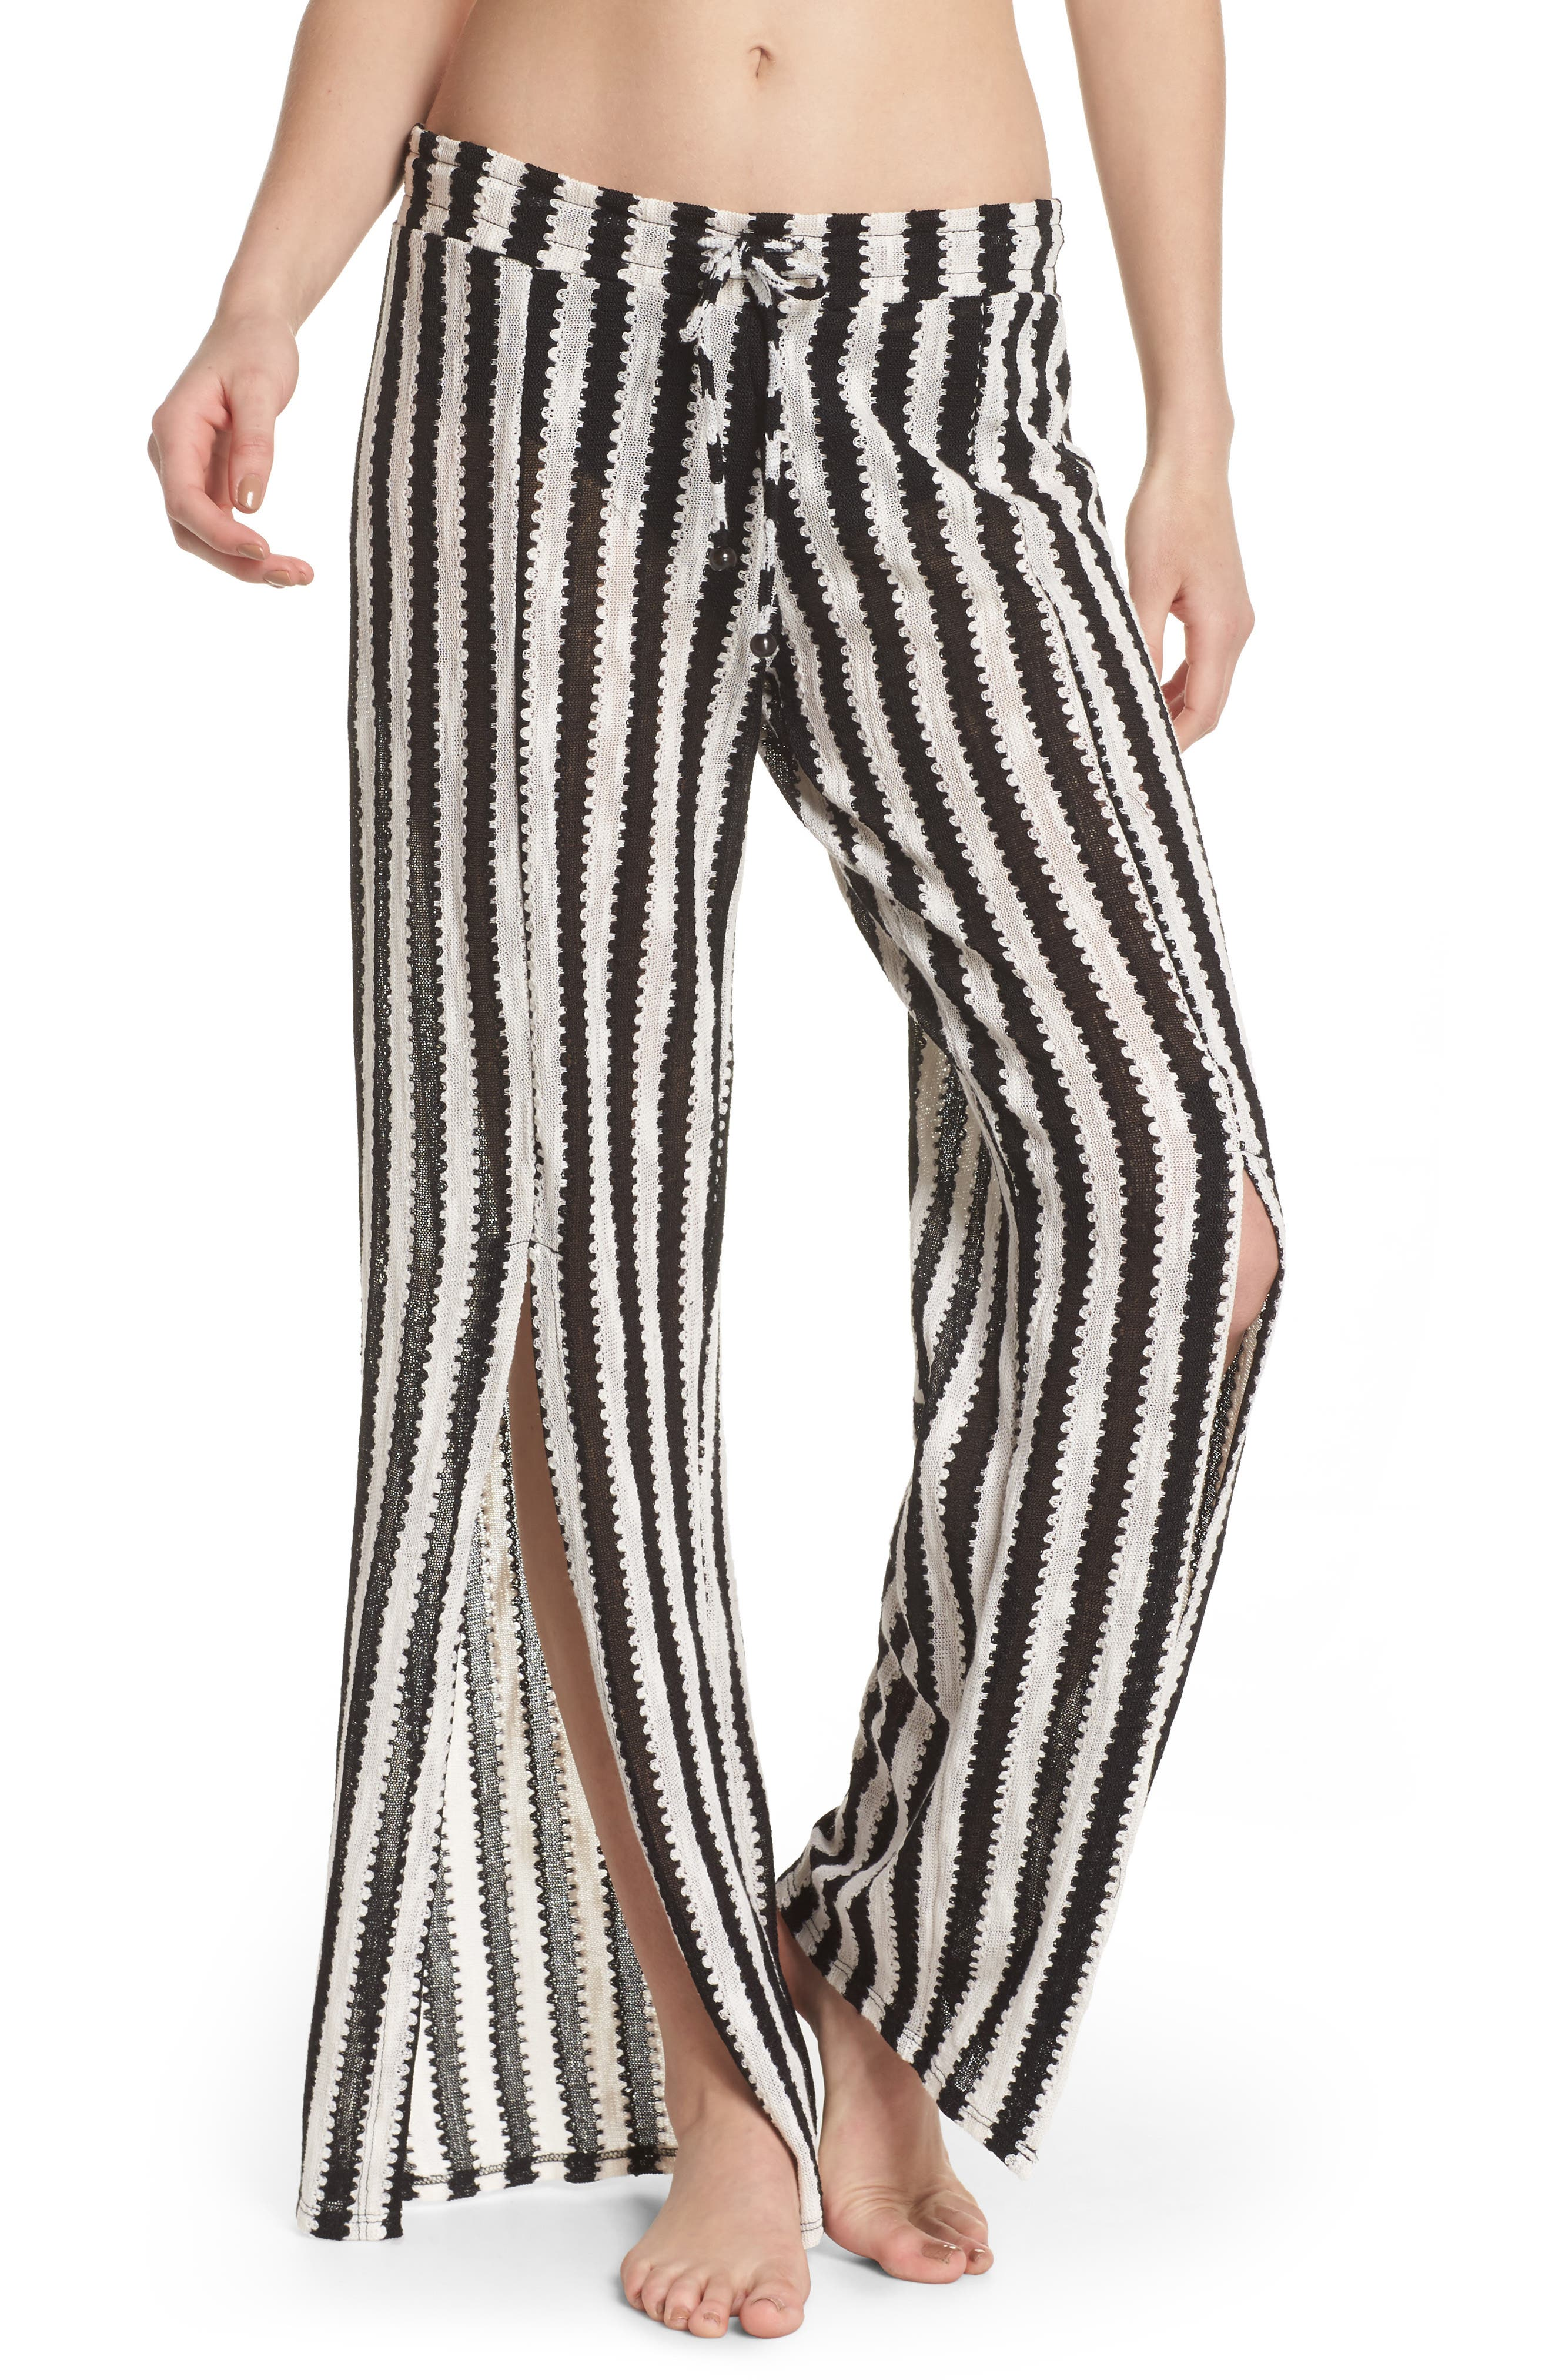 Ships Ahoy Cover-Up Pants,                         Main,                         color, Black And White